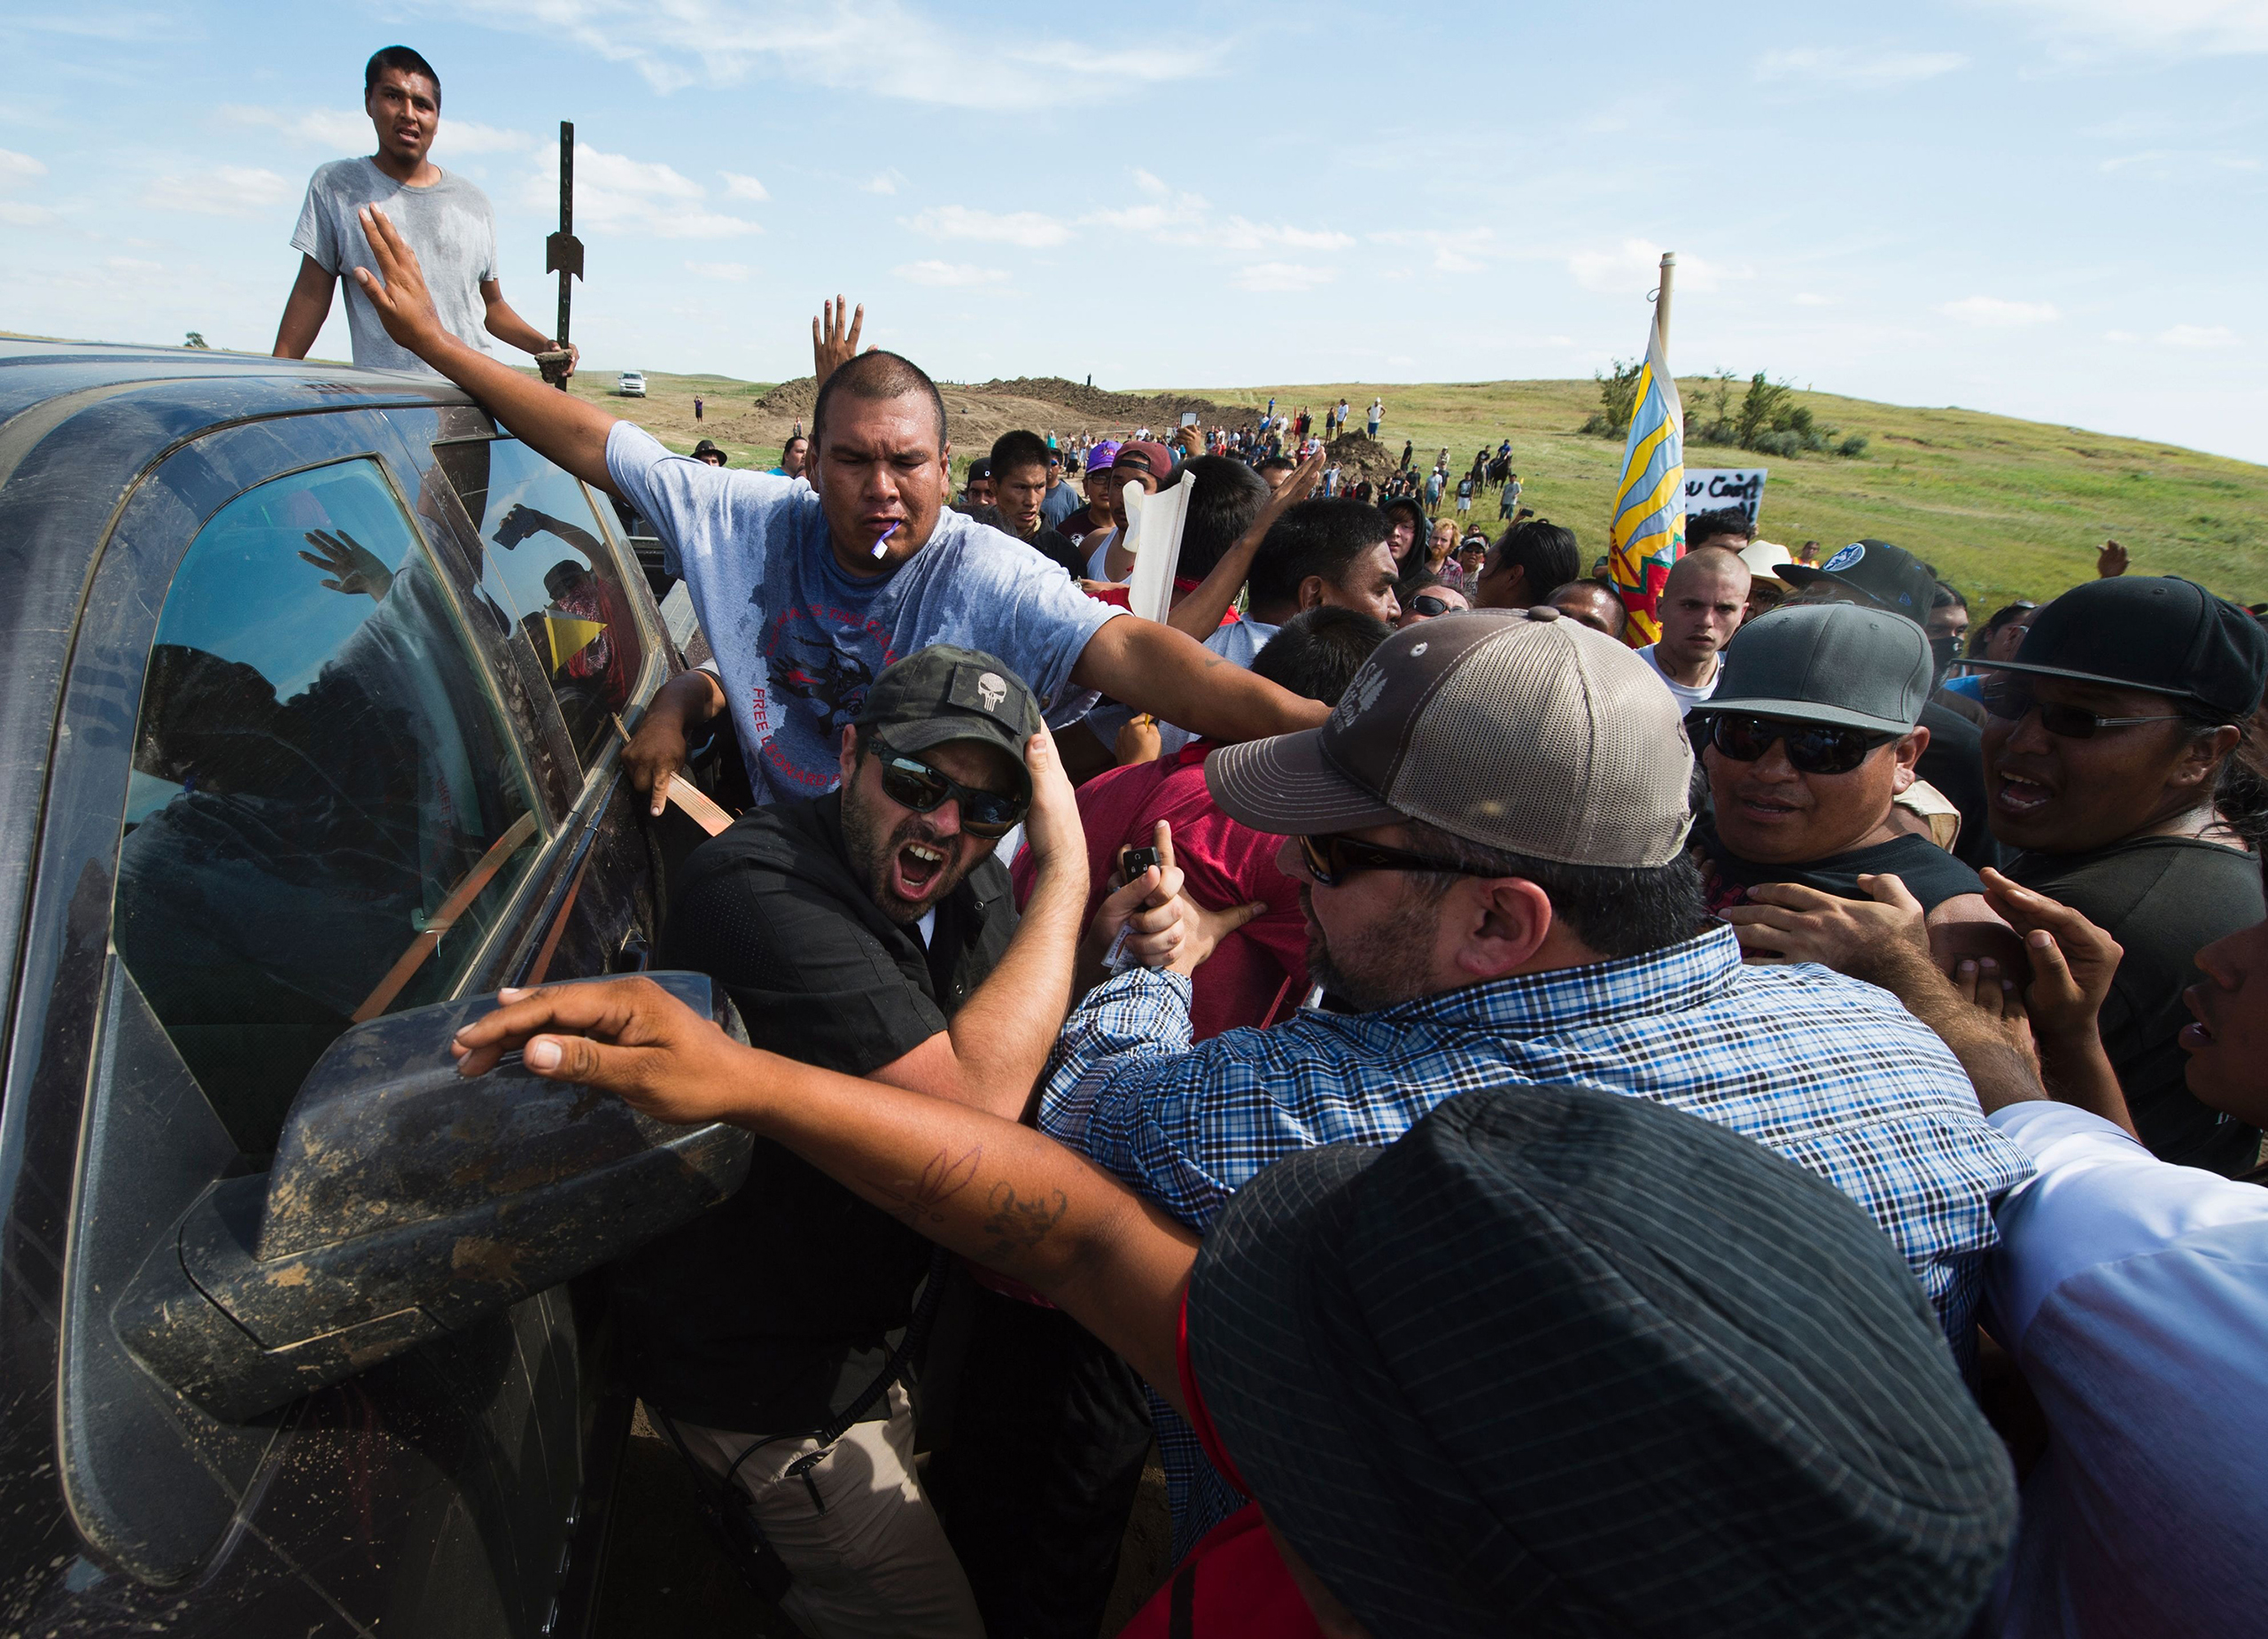 Protesters protect a security contractor from other protesters                      on Sept. 3